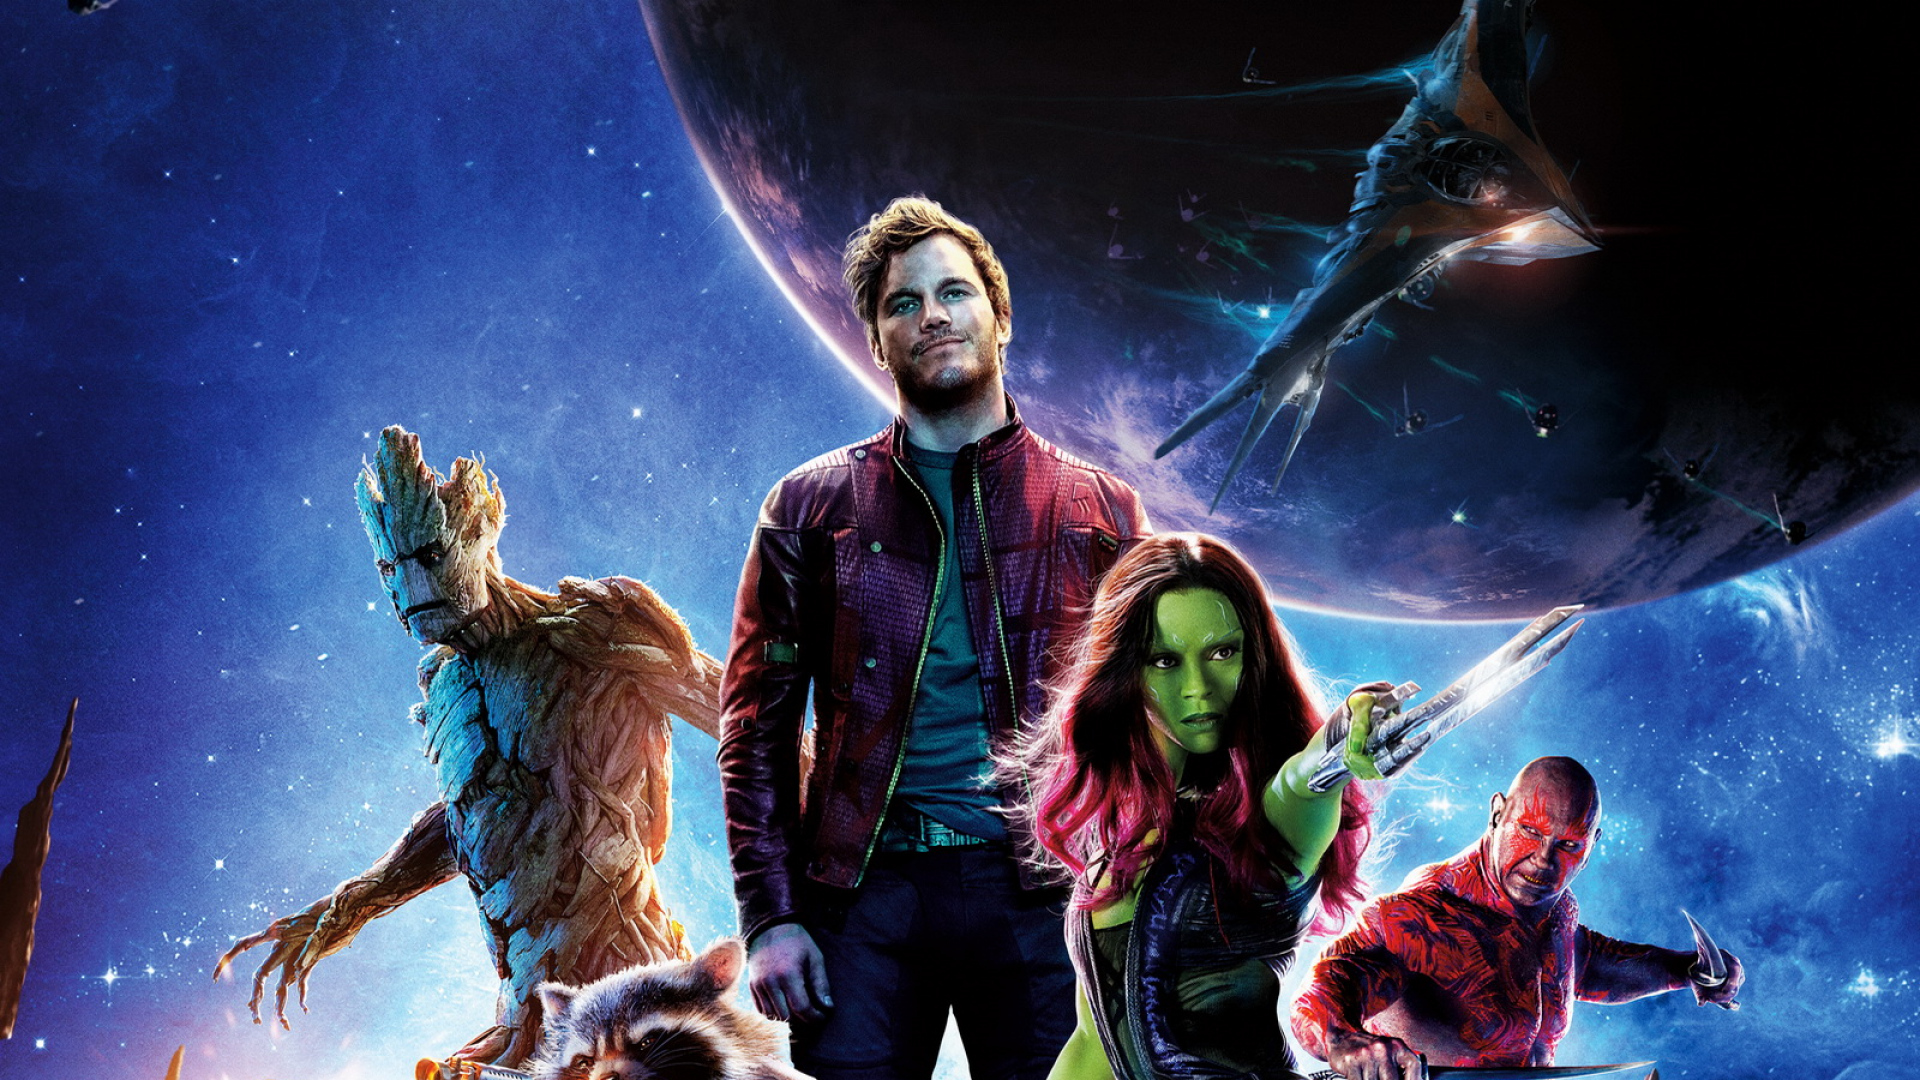 Chris Pratt In Guardians Of The Galaxy Poster Hd Image Free